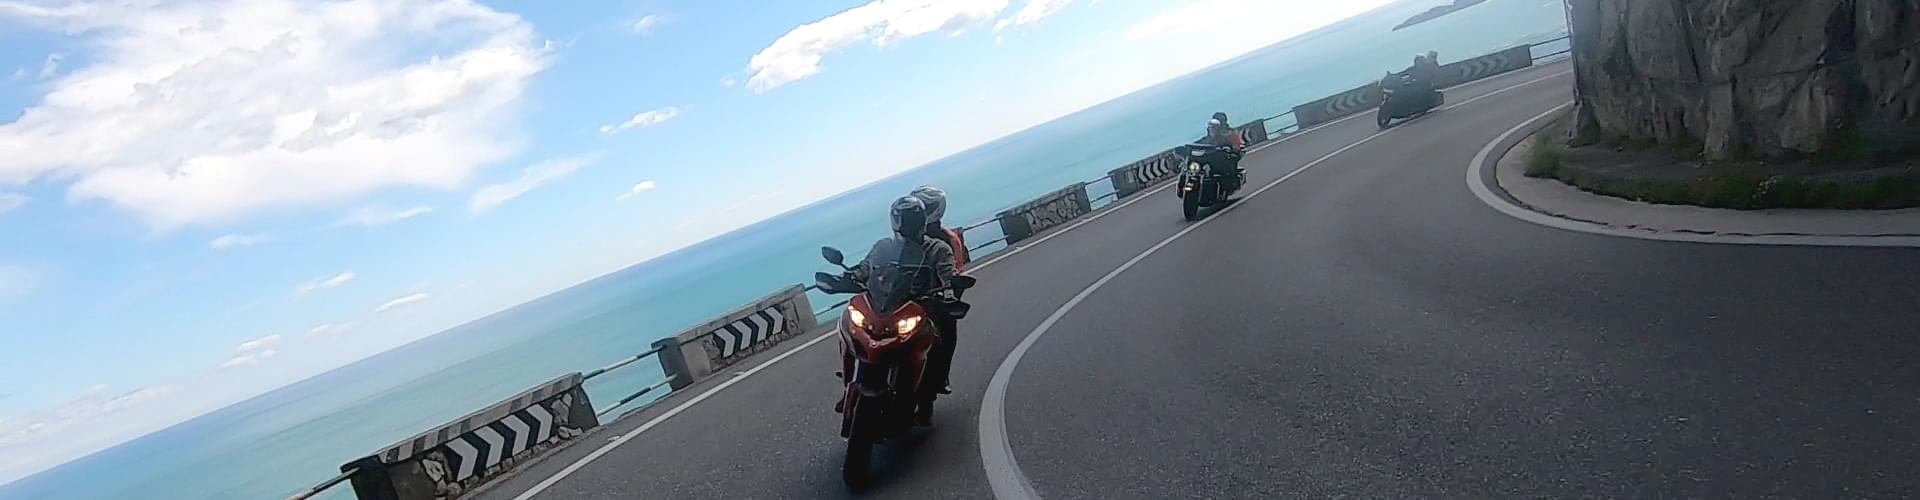 Riding a Ducati slongo the beautiful roads of Amalfi Coast